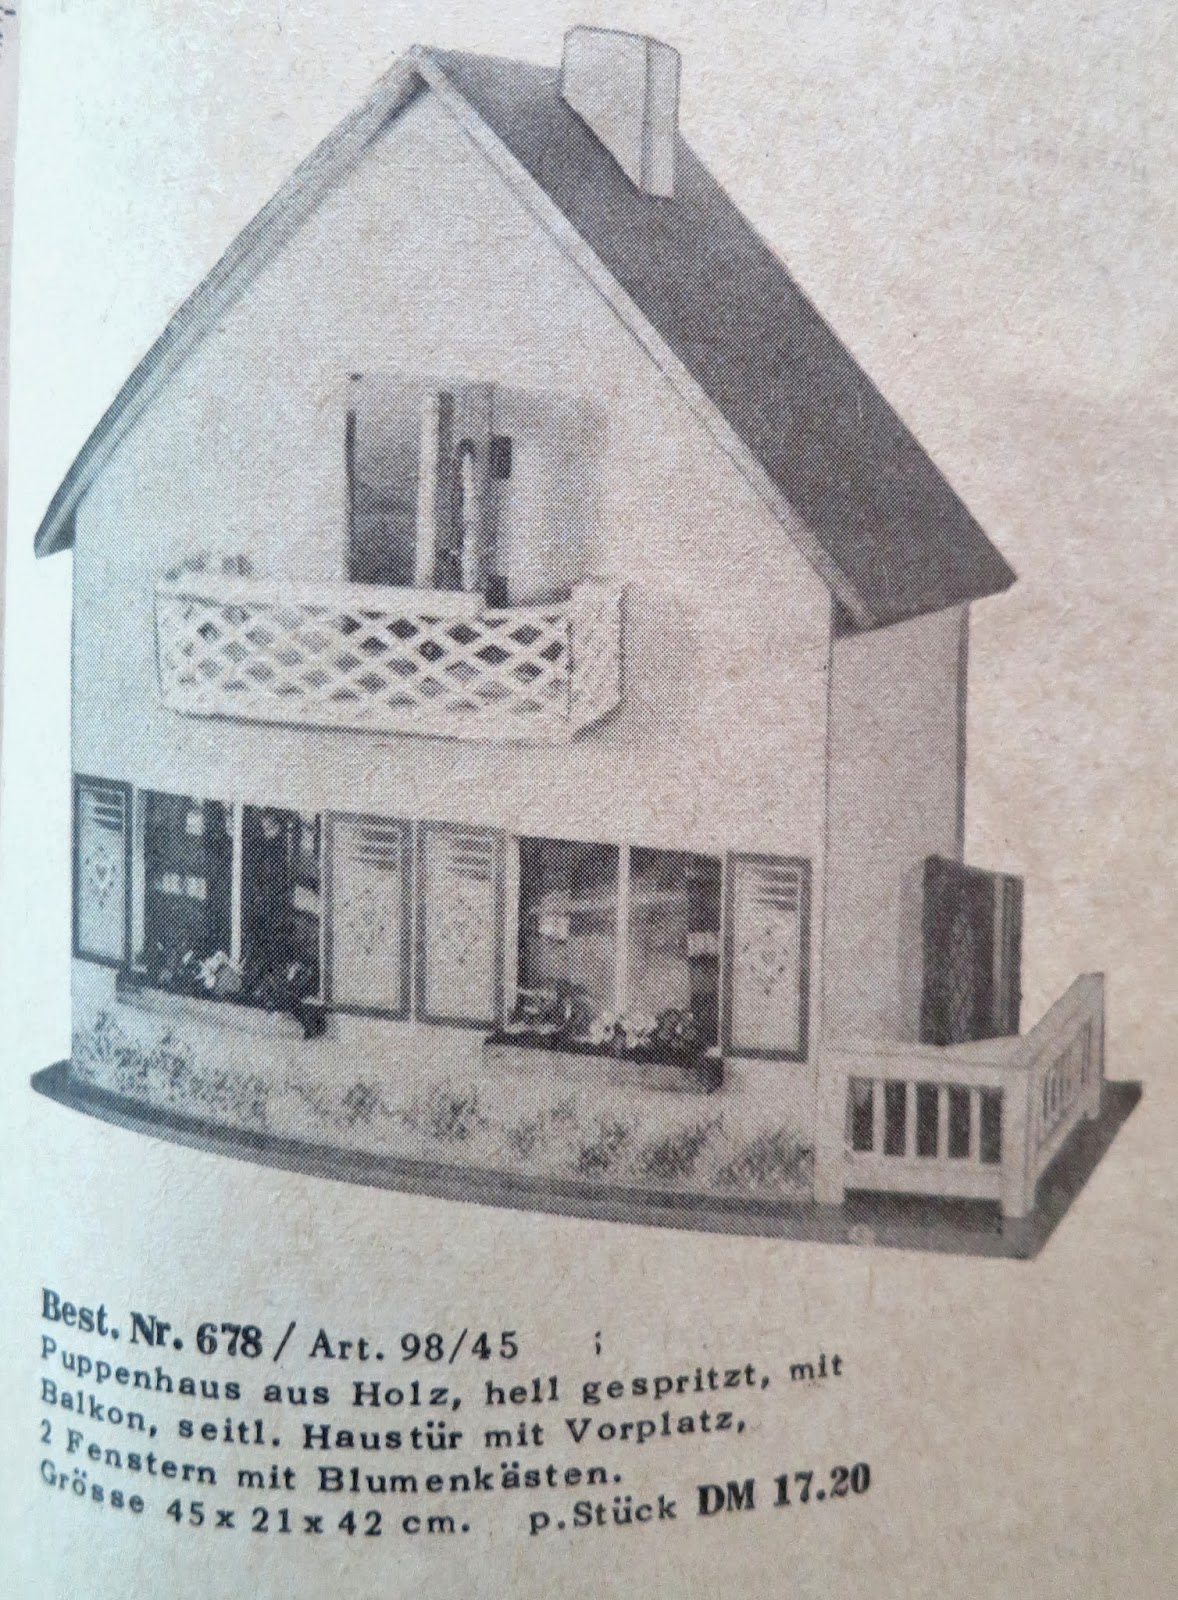 1957 greyscale catalogue pic of Schönherr small cottage